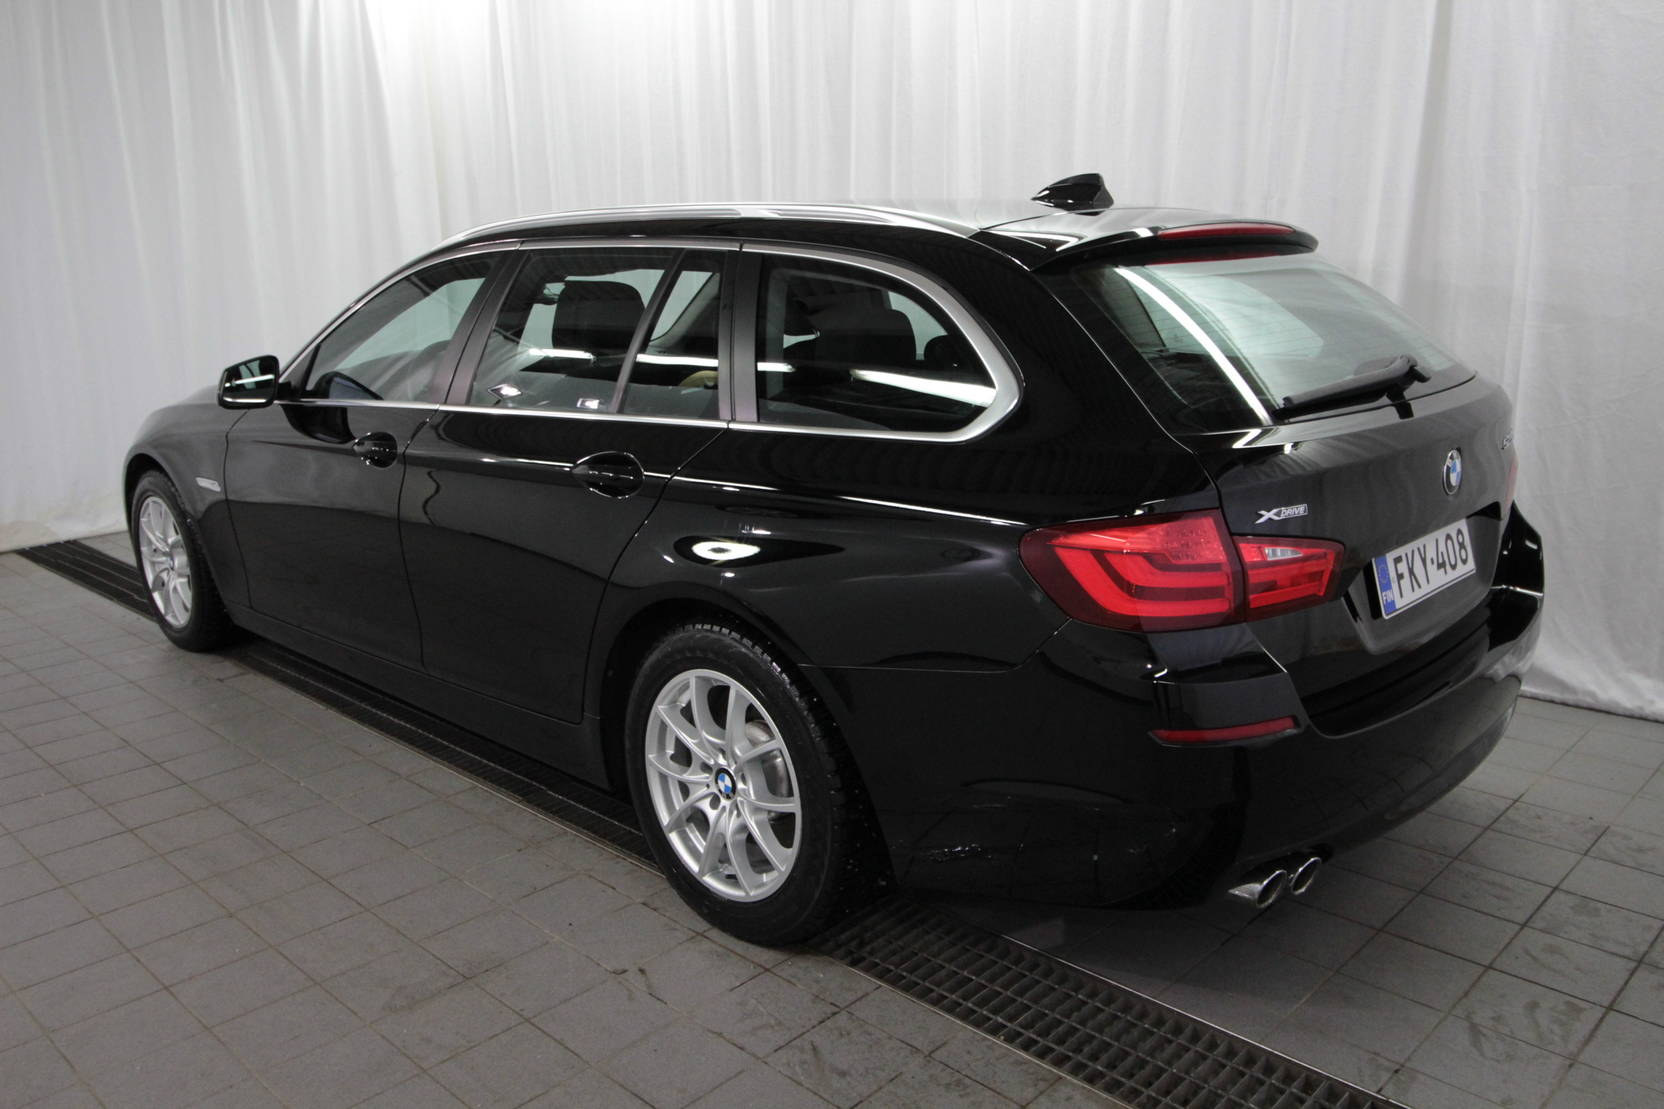 BMW 5 Serie Touring 525d Twinpower T A Limit Ed Xdrive detail2